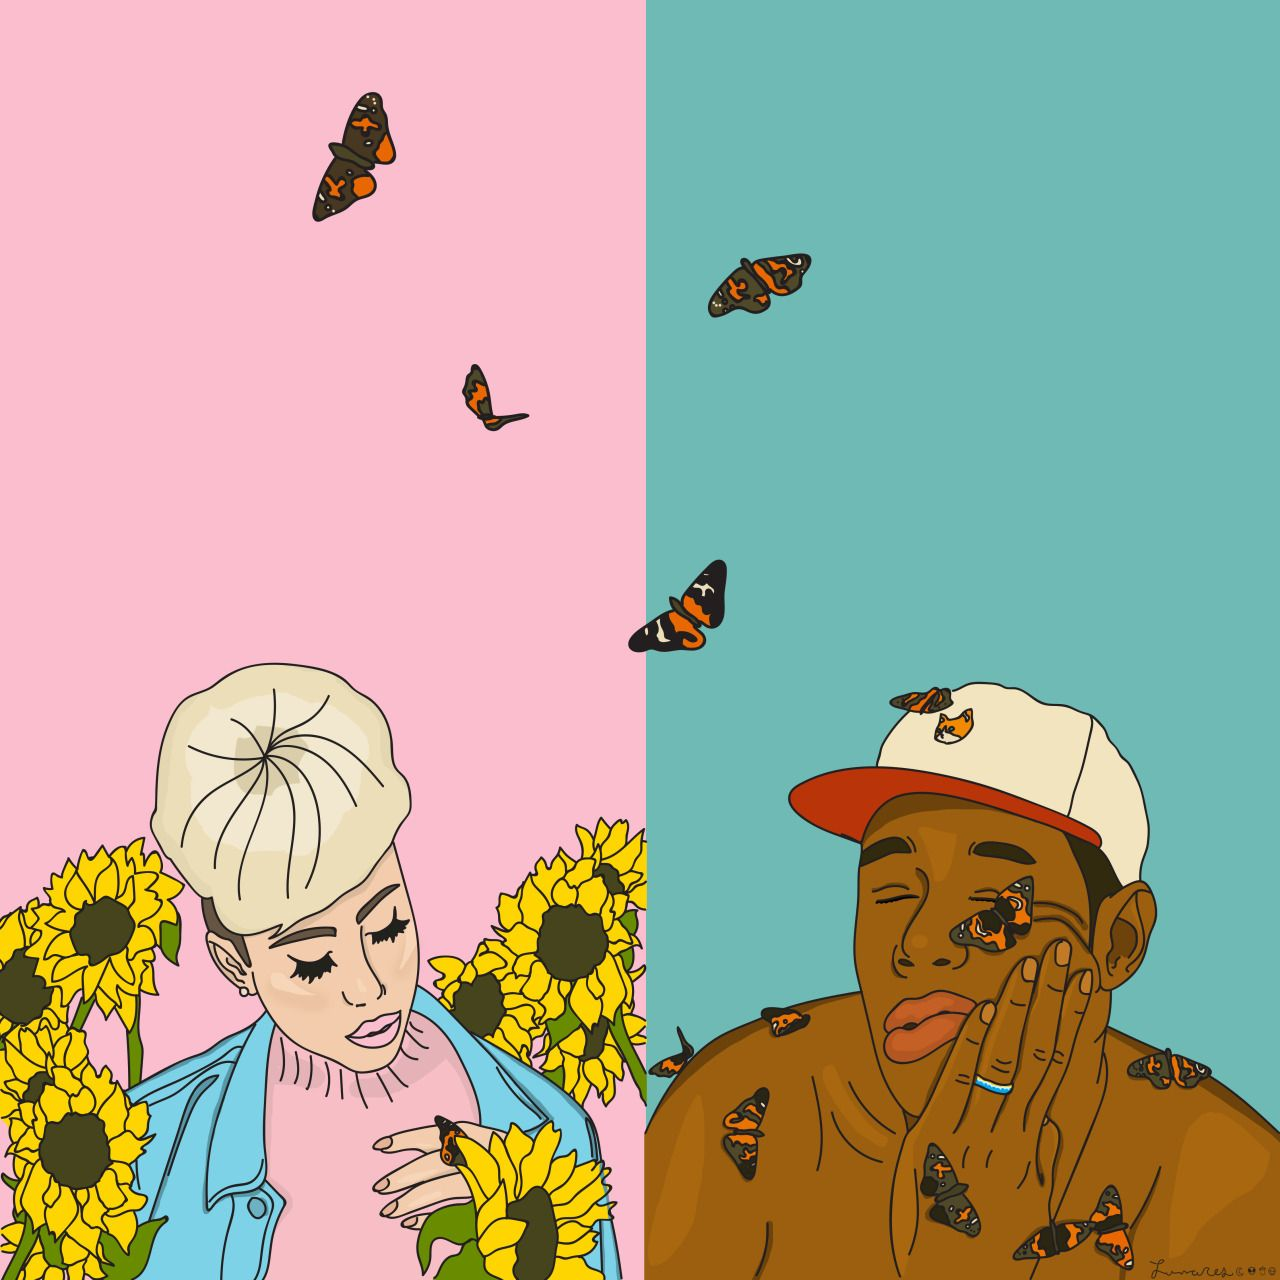 Pin by Katherine Sanchez 🌹 on KALI UCHIS Tyler the